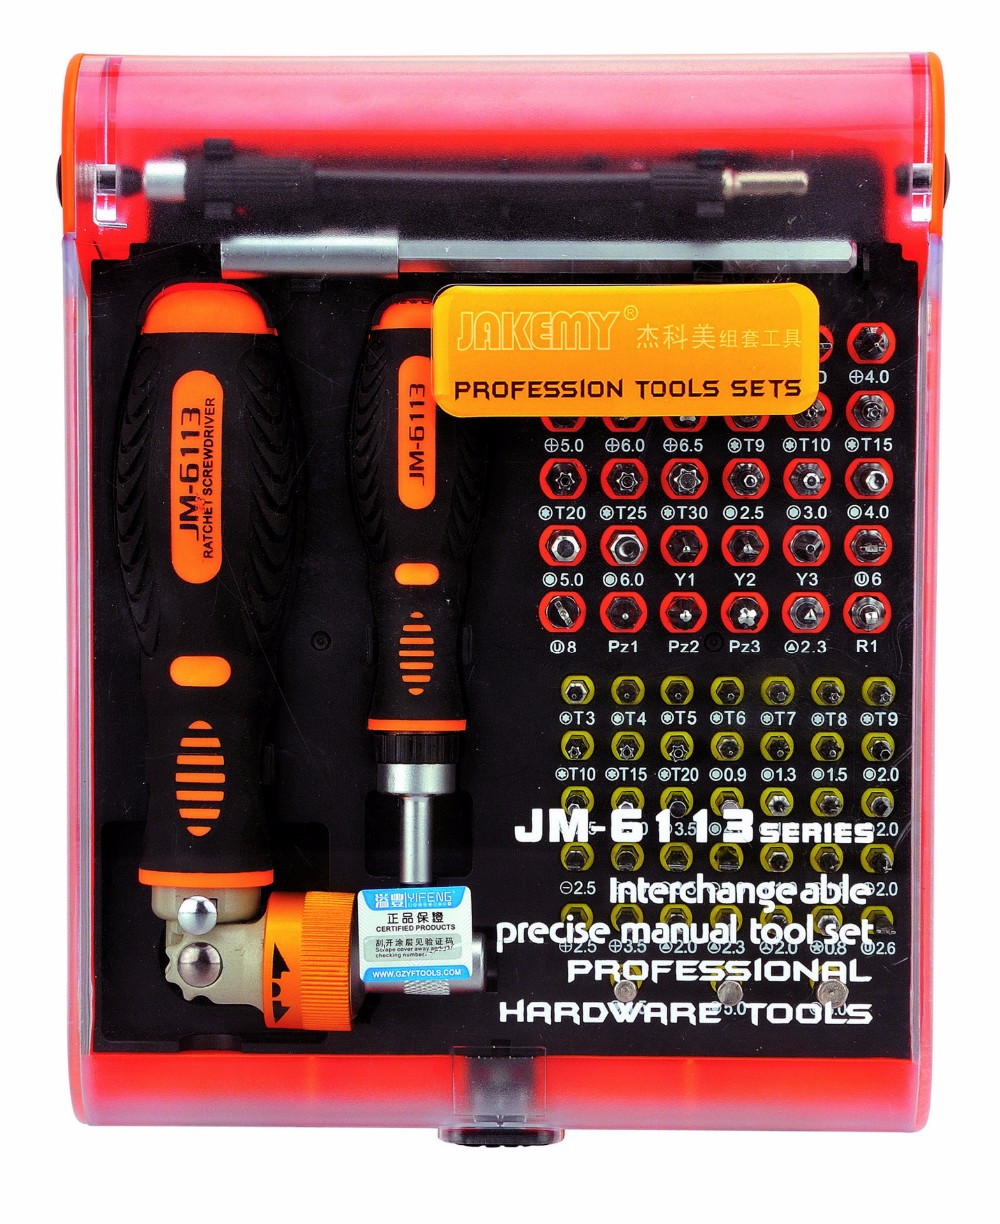 JAKEMY 73 in1 Household Tool Set  Ratchet Screwdriver Hardware Tools Furniture Fittings JM-6113 For phone Laptop Electronics jakemy jm 6092b 58 in 1 screwdriver set